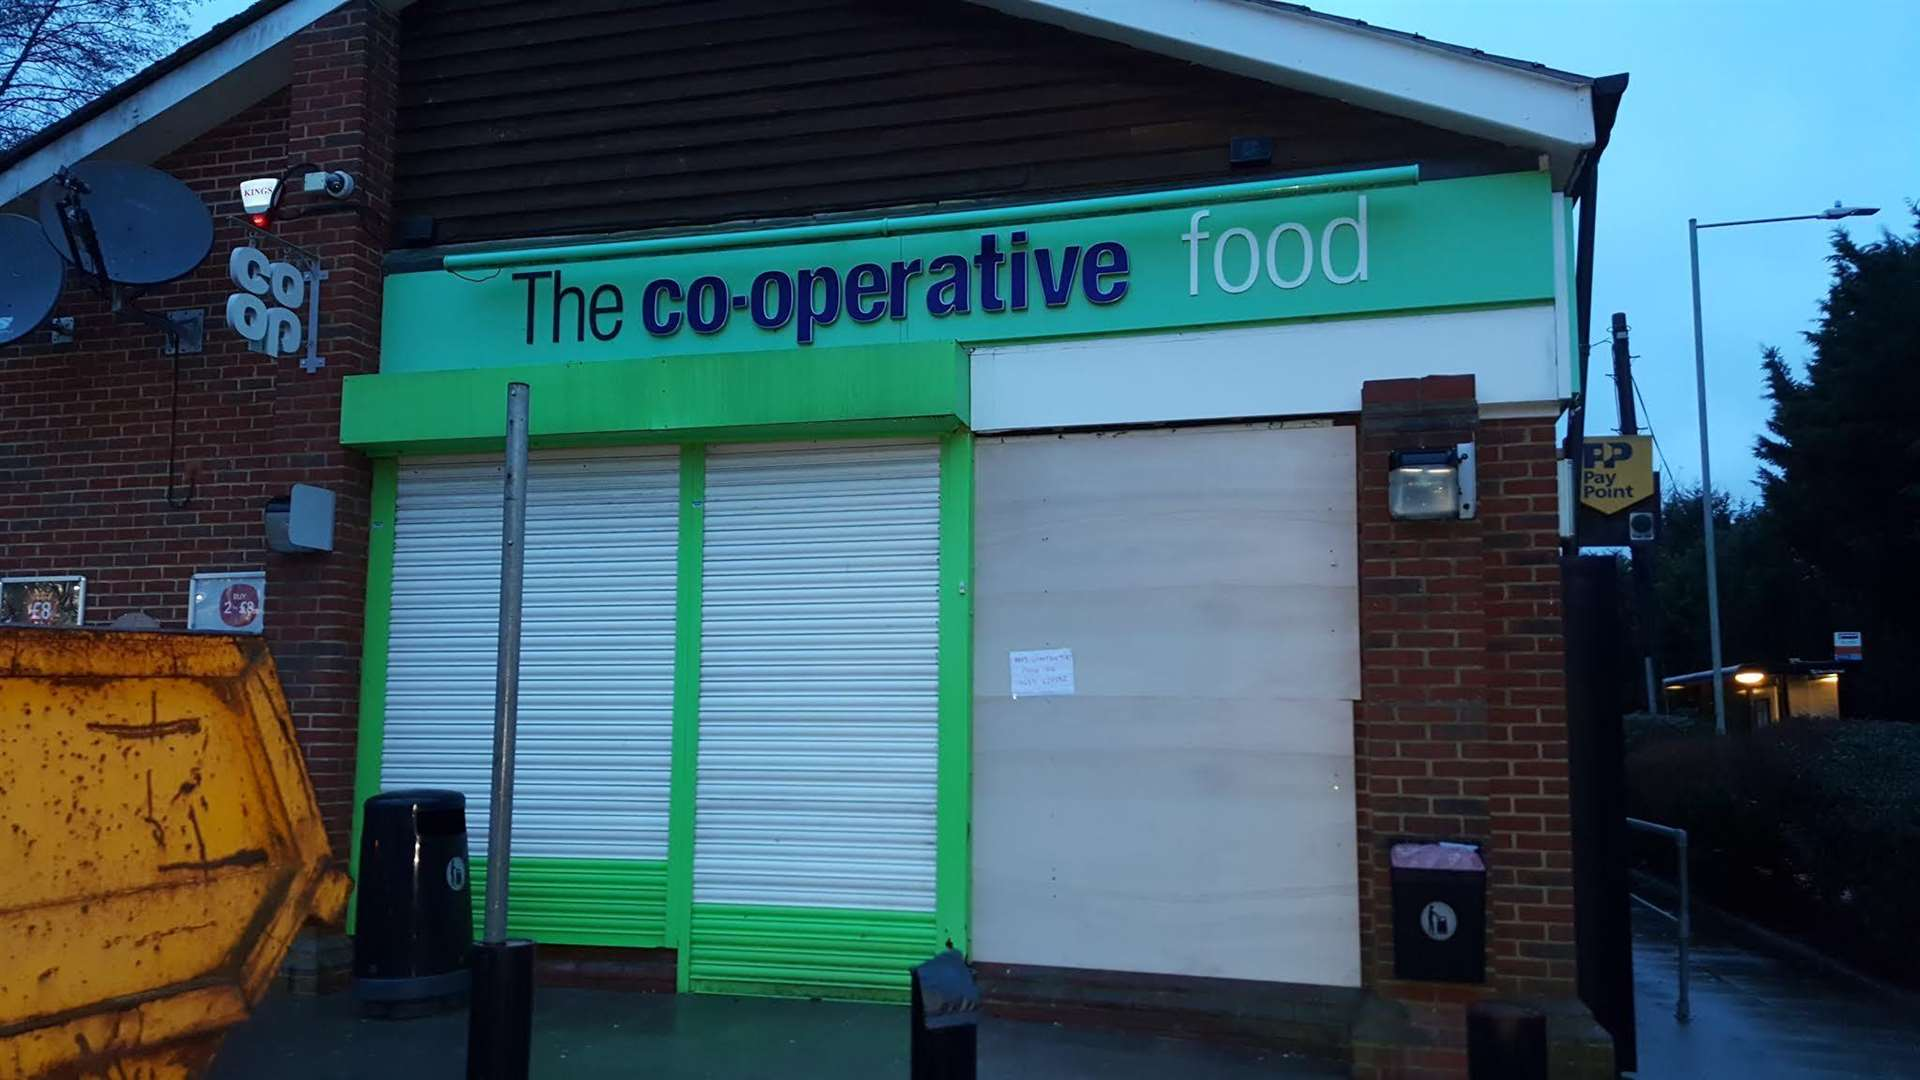 The Co-op has been boarded up (7056889)